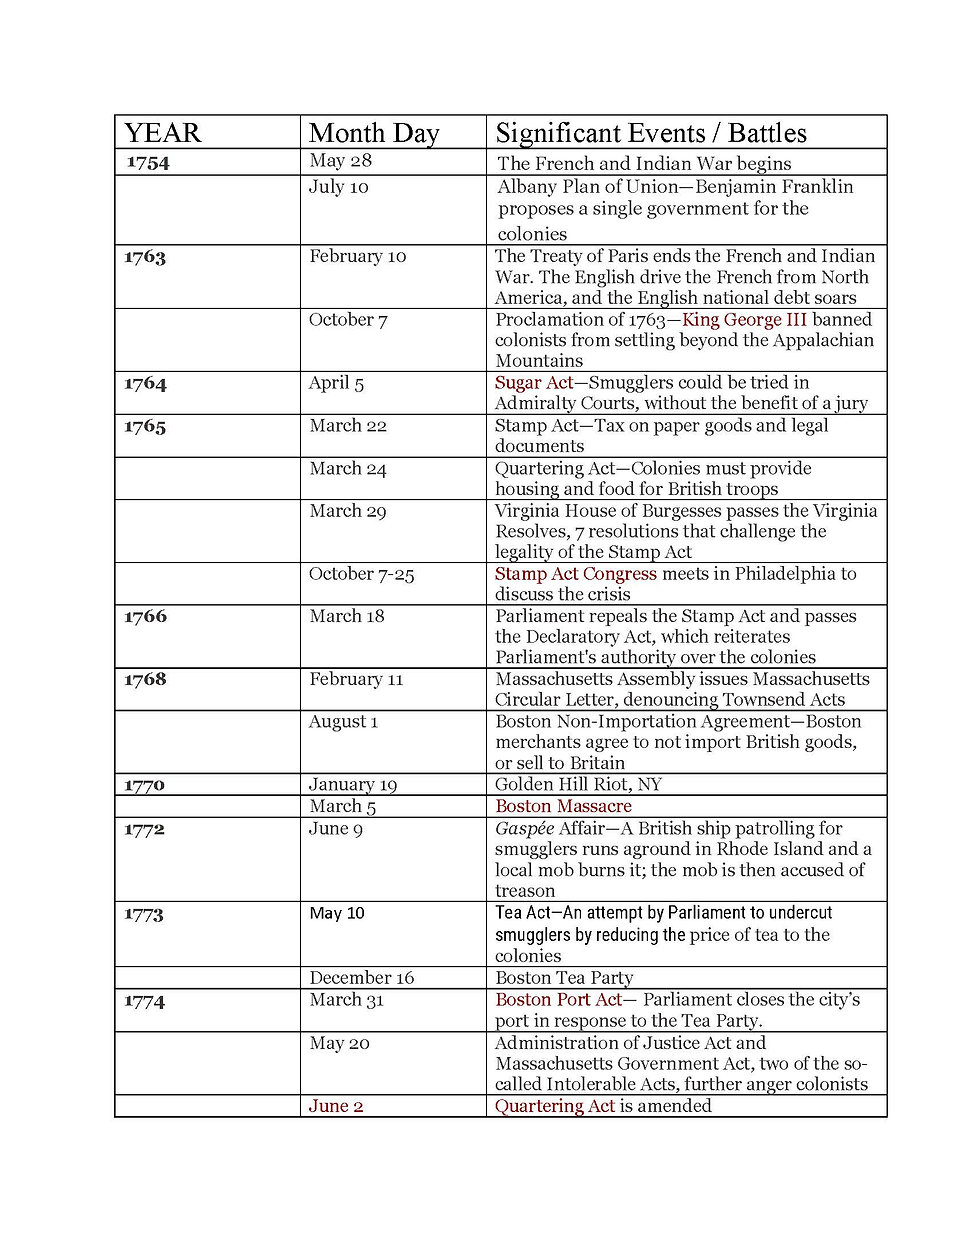 AMR Timeline of Important Events_Page_1.jpg